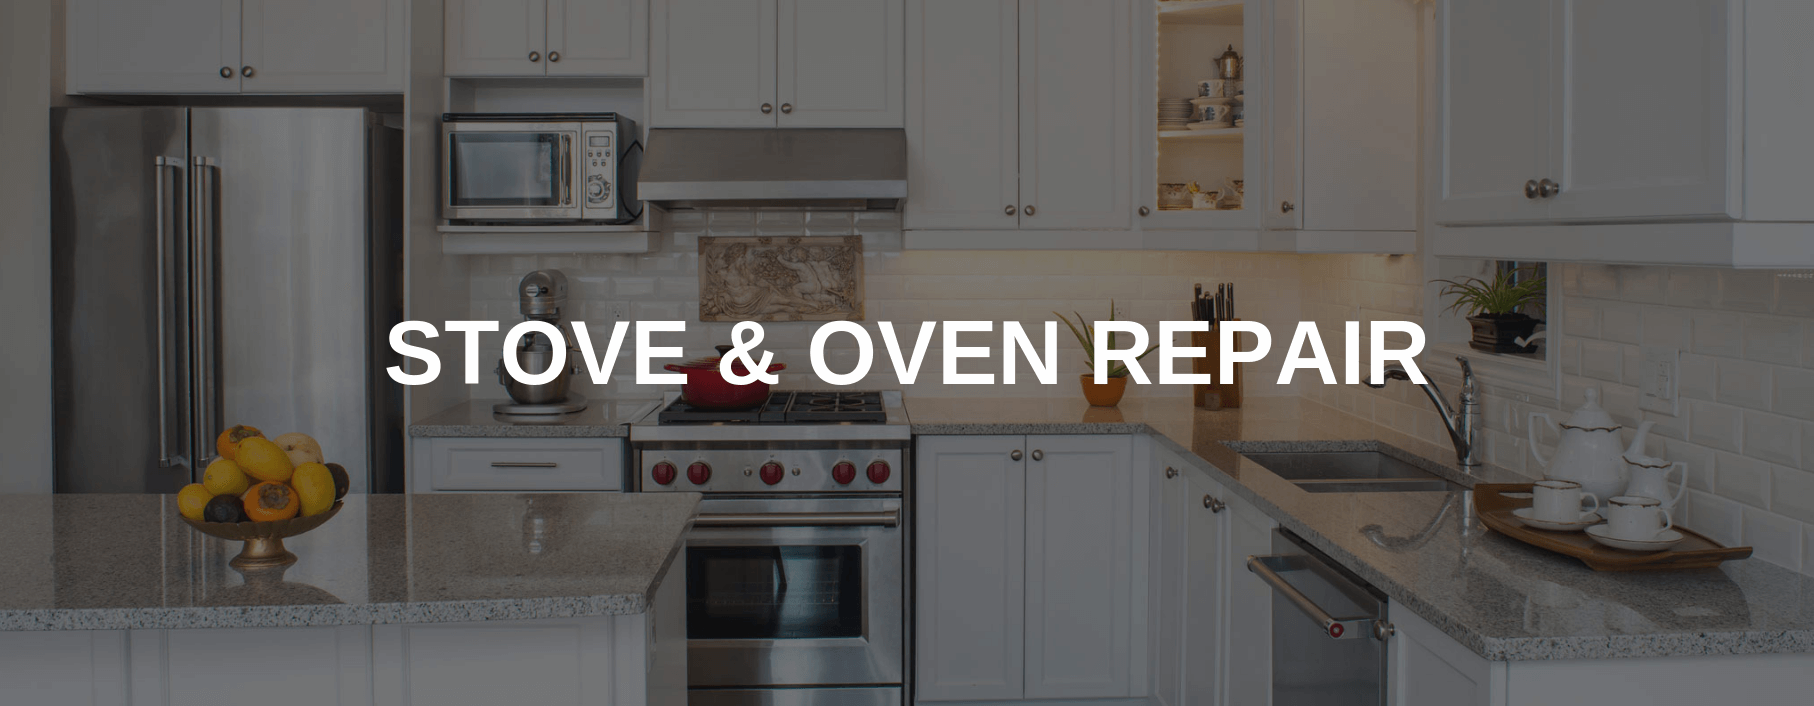 stove repair cincinnati